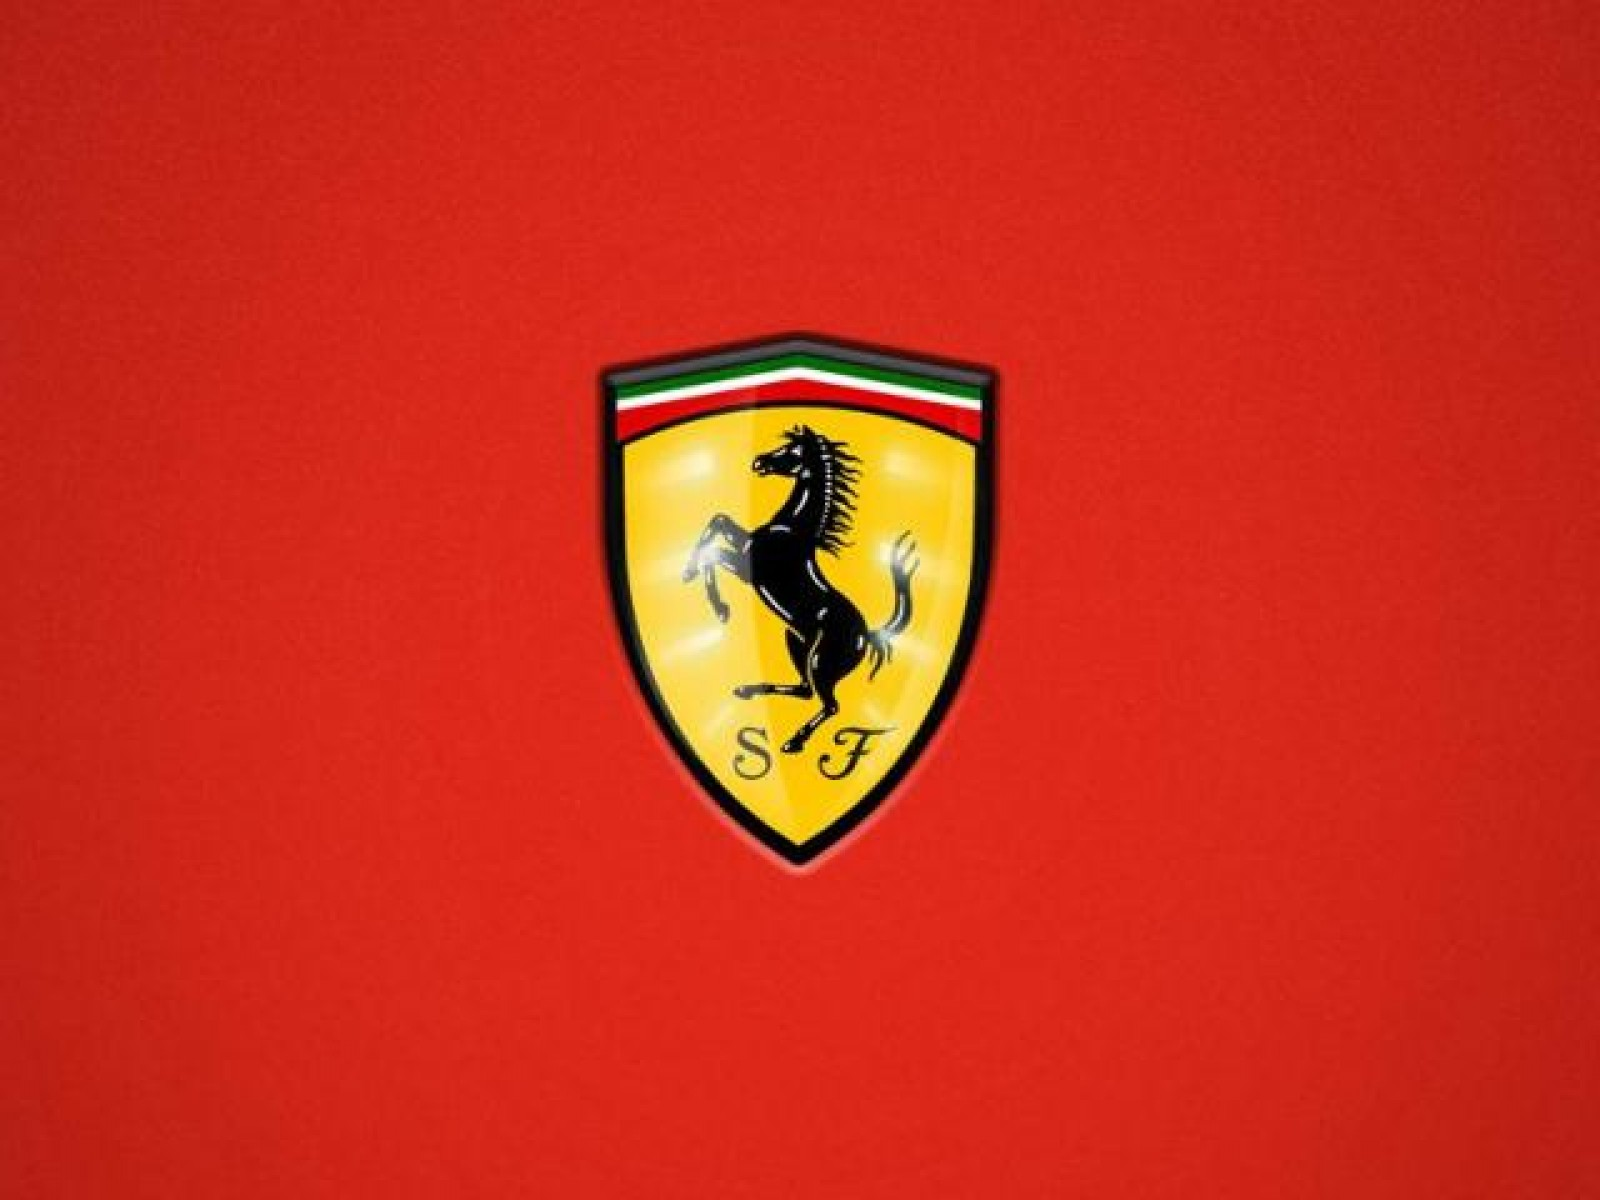 ferrari logo wallpaper 82C | Hd Wallpaper, Blue Wallpaper